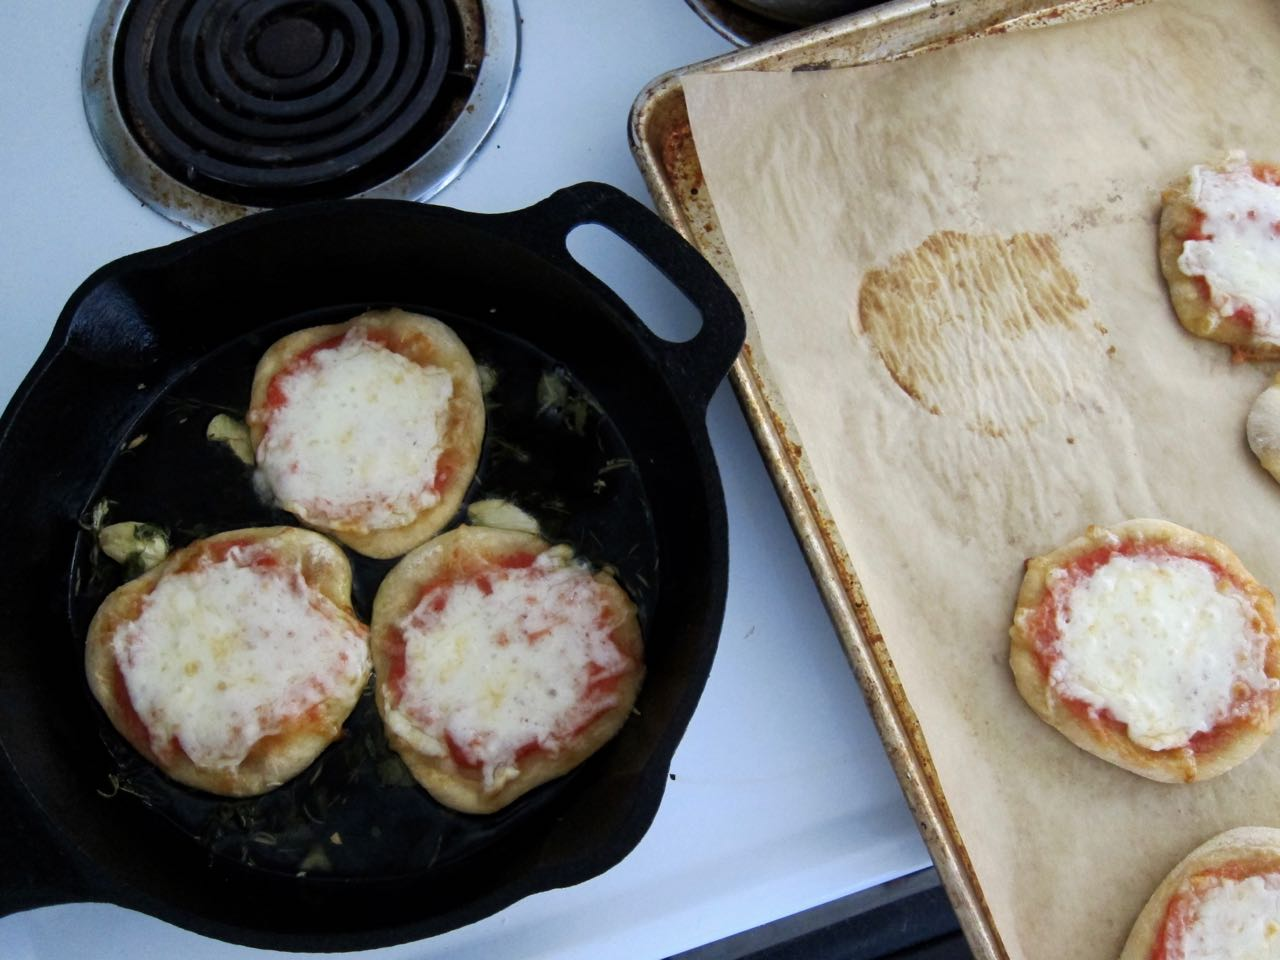 frying baked mini pizzas.jpg